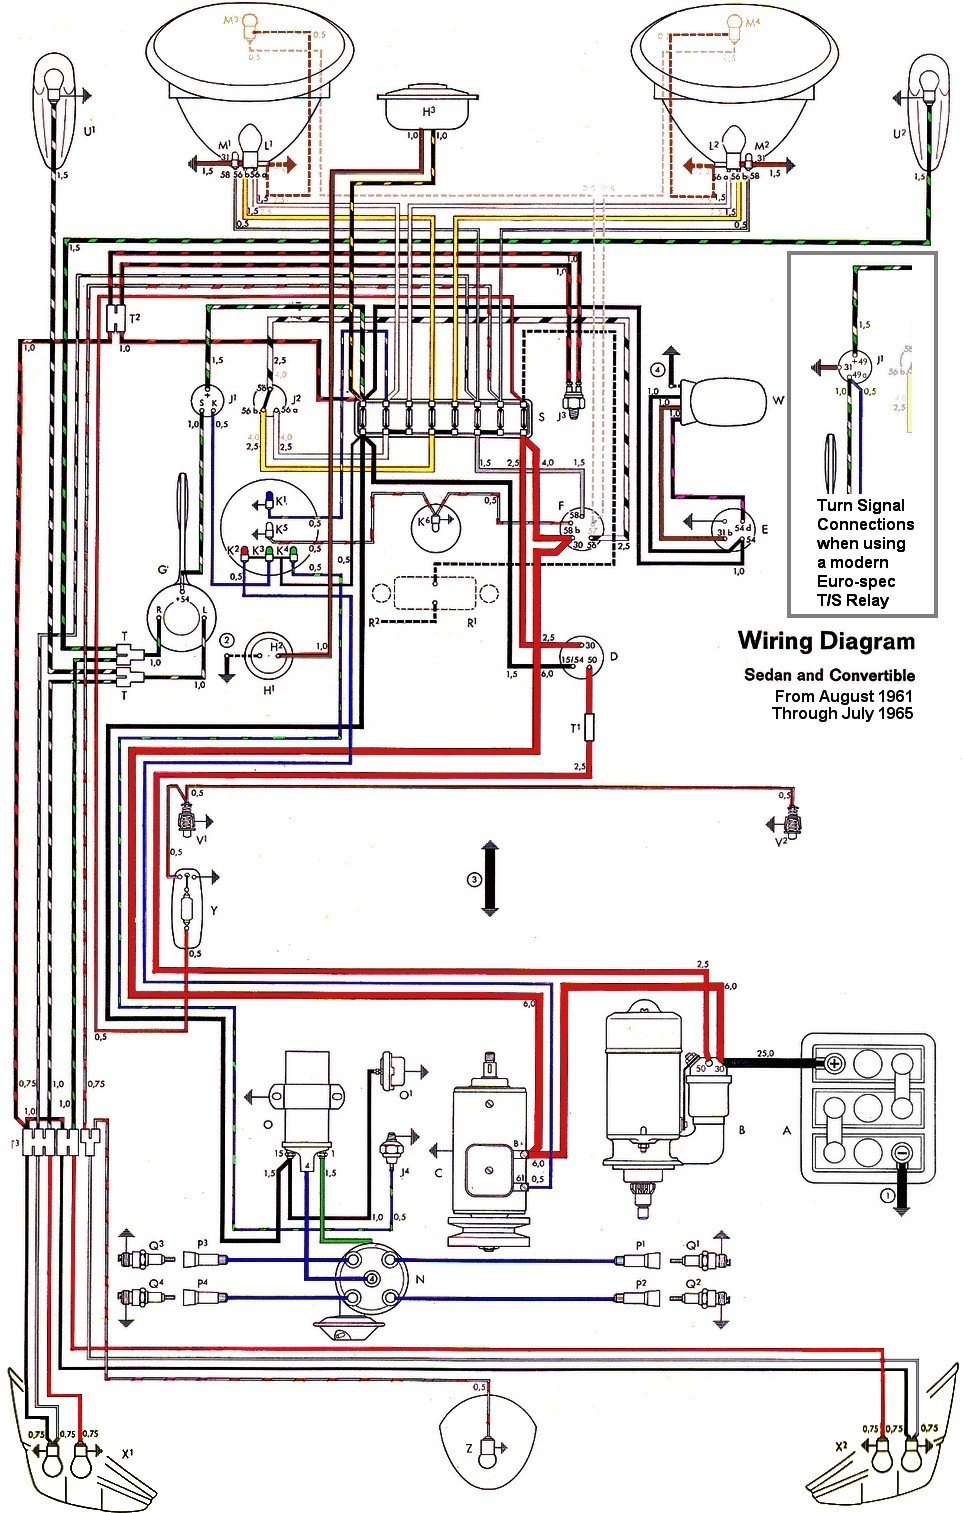 1960 Vw Bug Wiring Another Blog About Diagram 1963 Galaxie Thesamba Com Type 1 Diagrams Rh